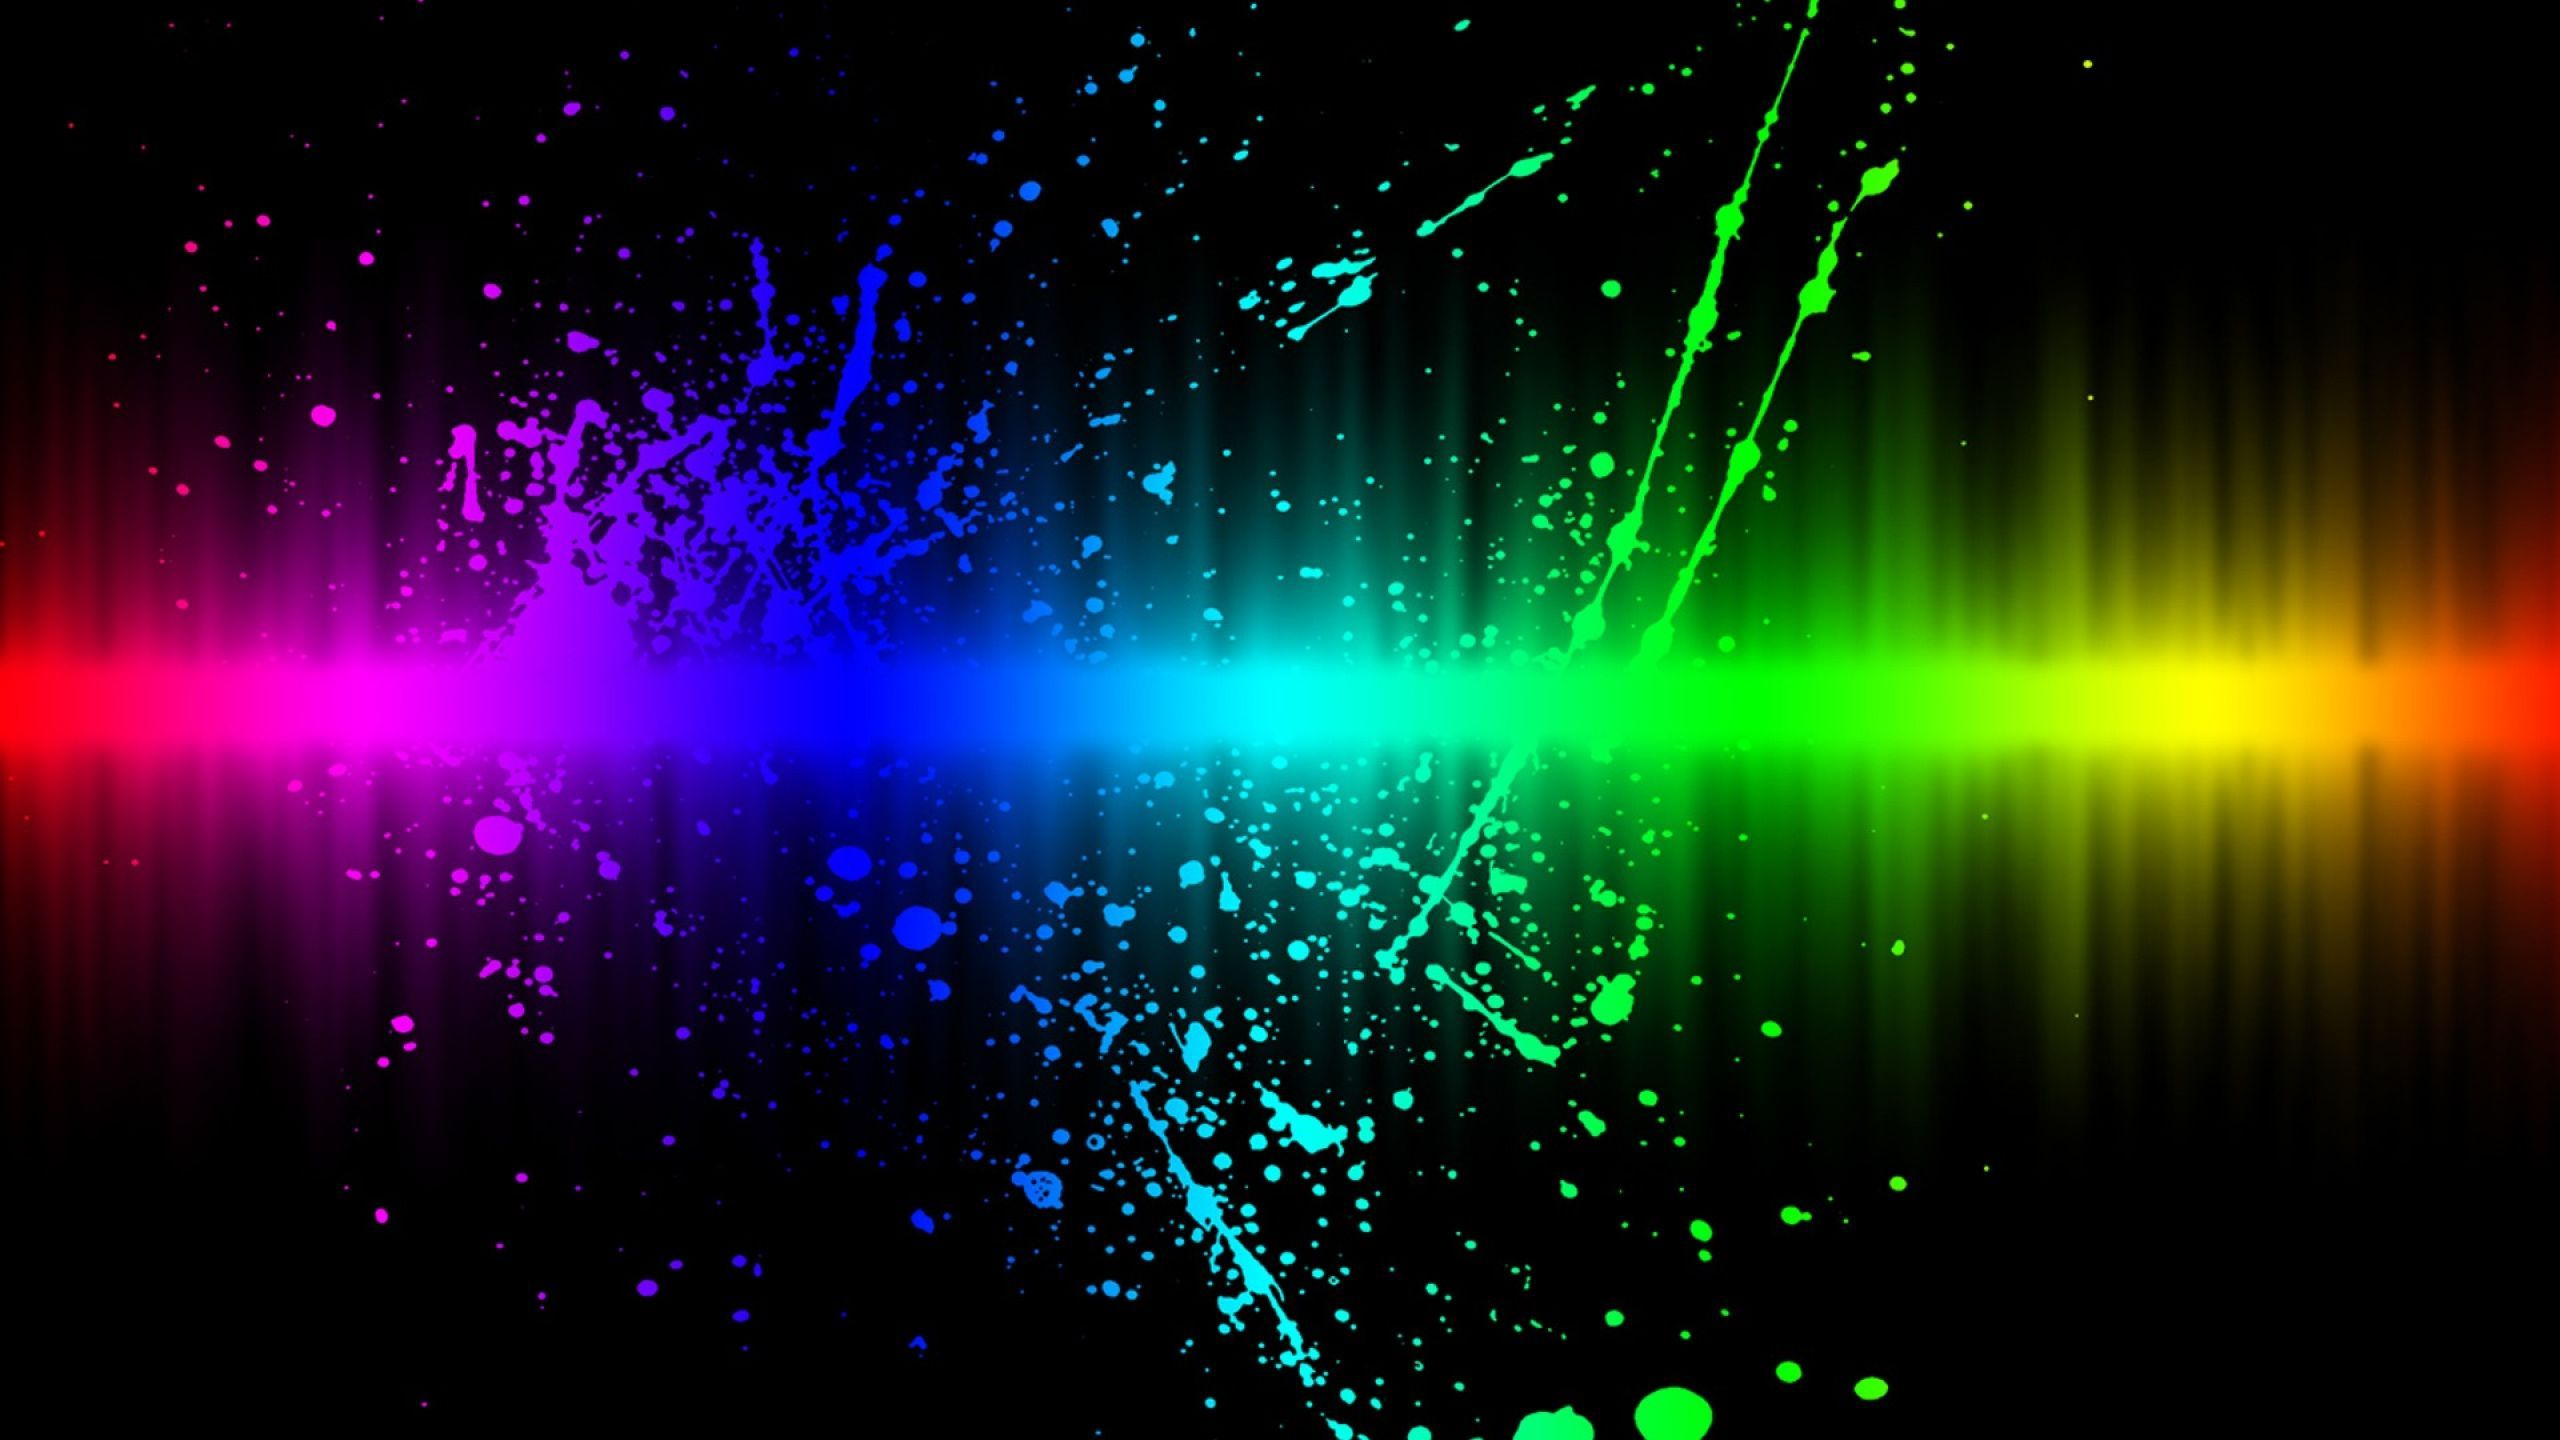 Cool Background Pics Rainbow wallpaper, Cool desktop